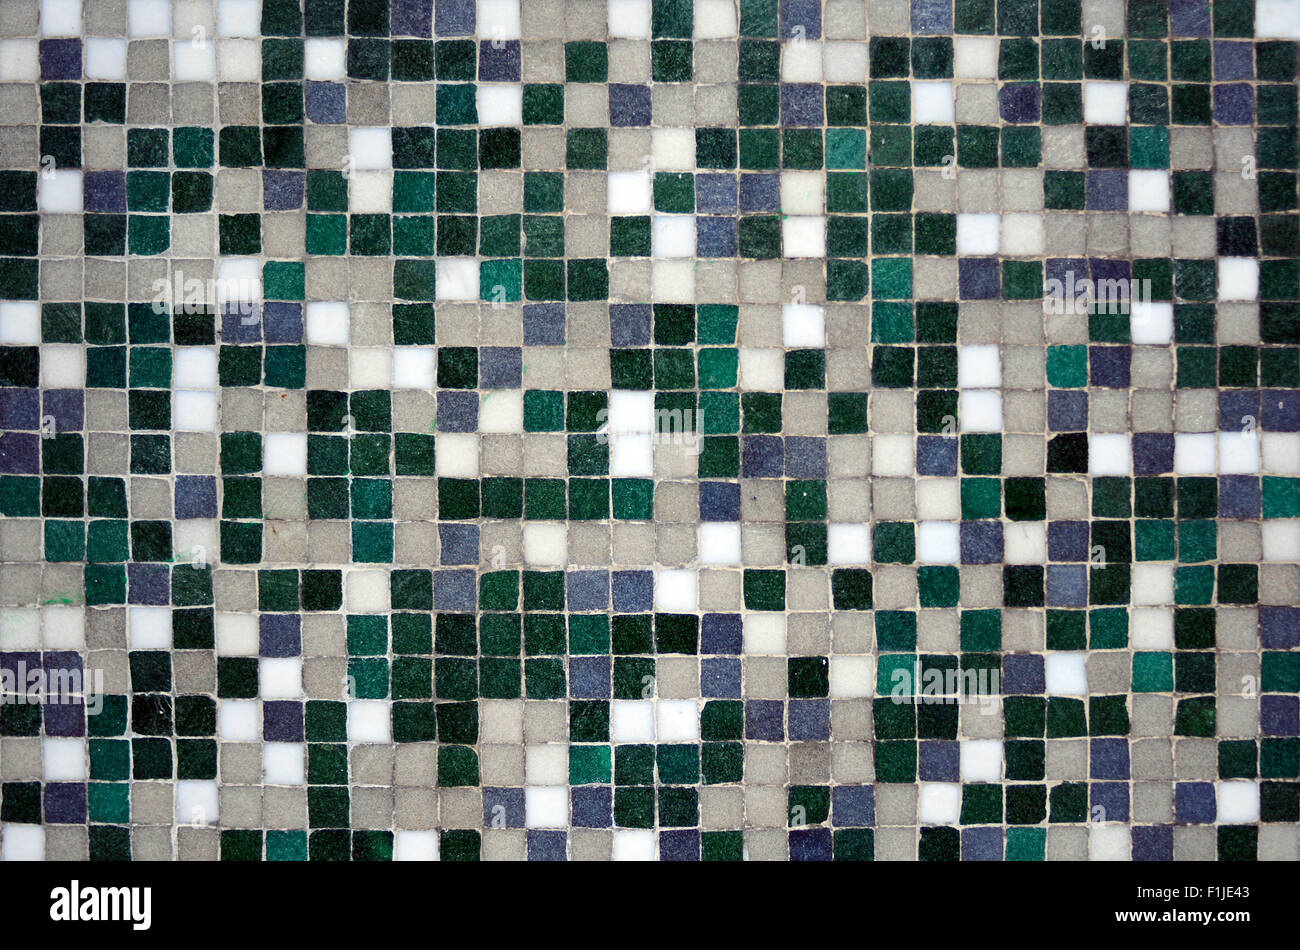 Made A Mano Piastrelle Mosaic Made Of Tiles Stock Photos Mosaic Made Of Tiles Stock